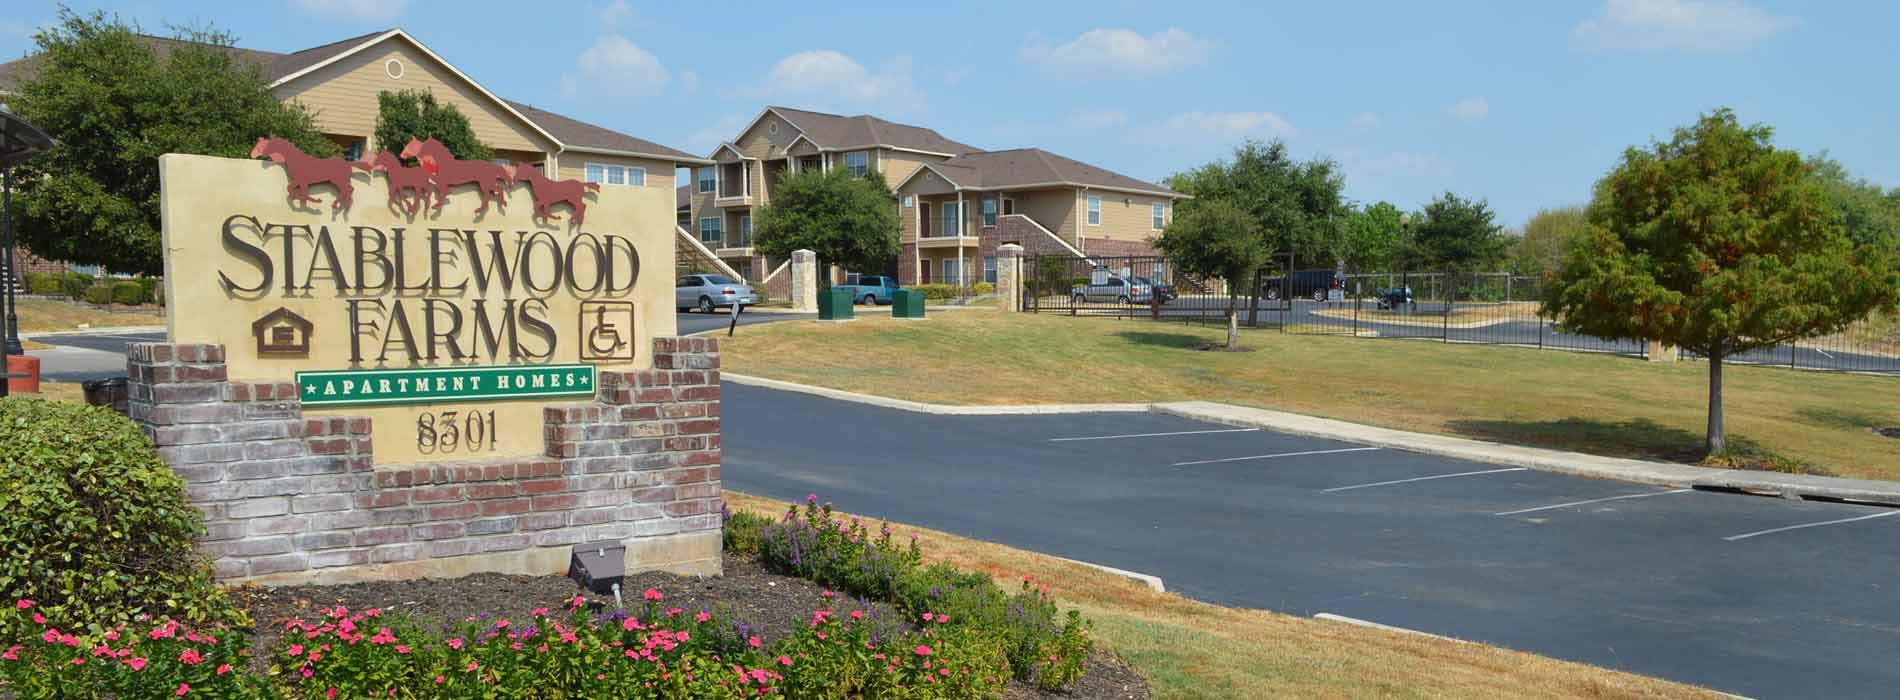 Stablewood Farms Apartments | San Antonio, TX | (210) 645 9100